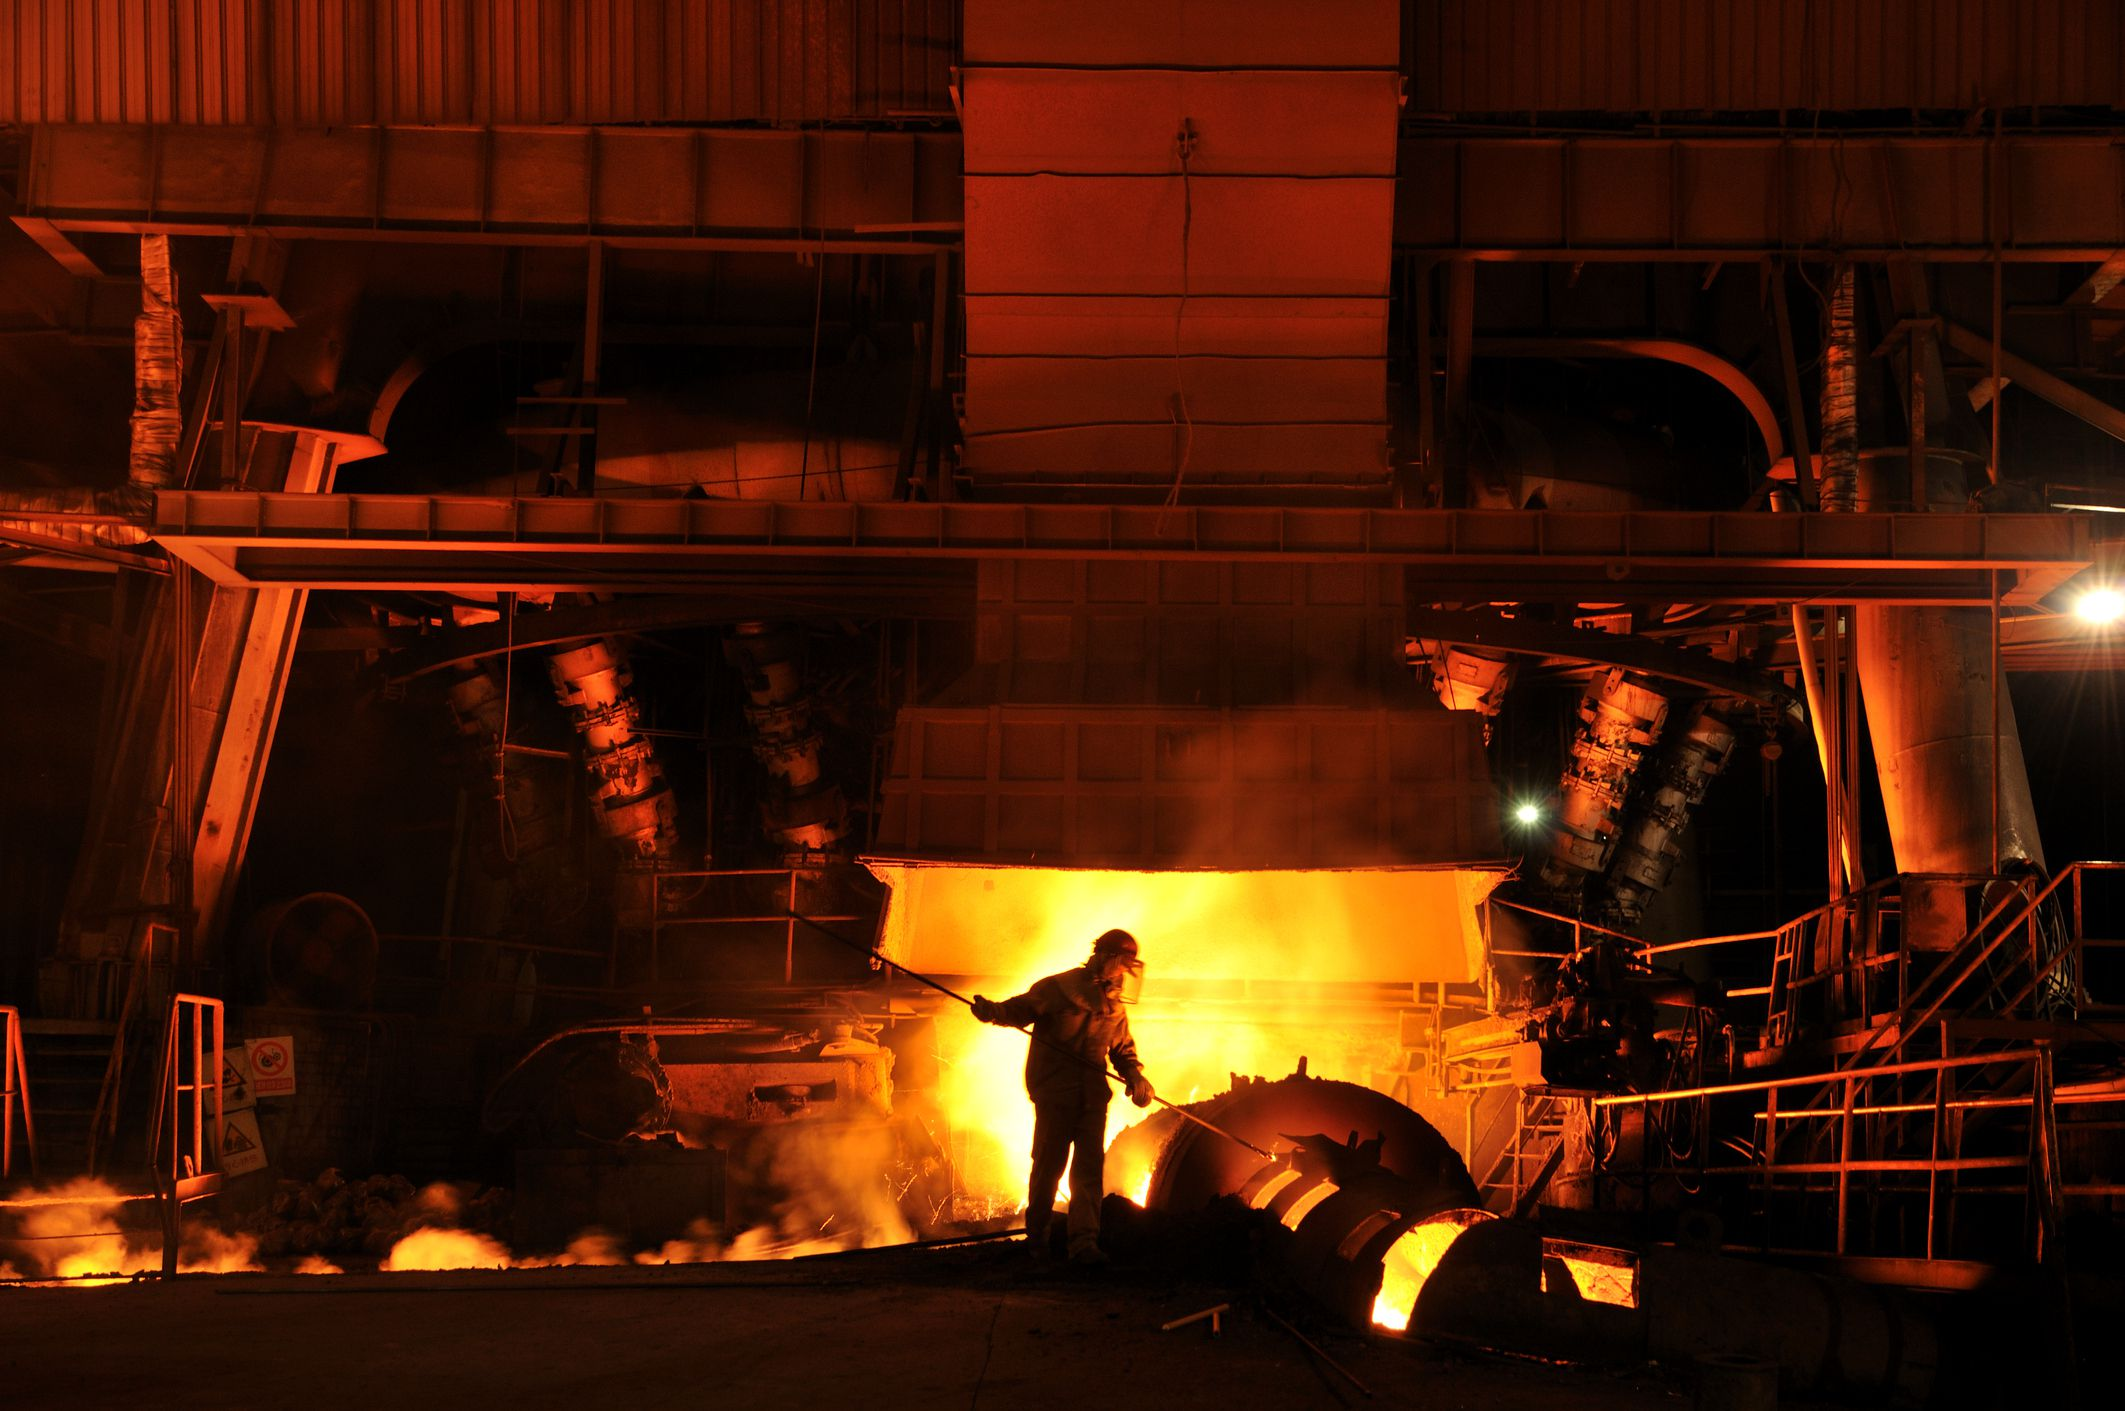 steel industry analysis posco vs u s The american iron and steel industry is a dynamic part of the us economy, accounting for more than $520 billion in economic output and nearly two million jobs in 2017 when considering the direct, indirect (supplier) and induced impacts.